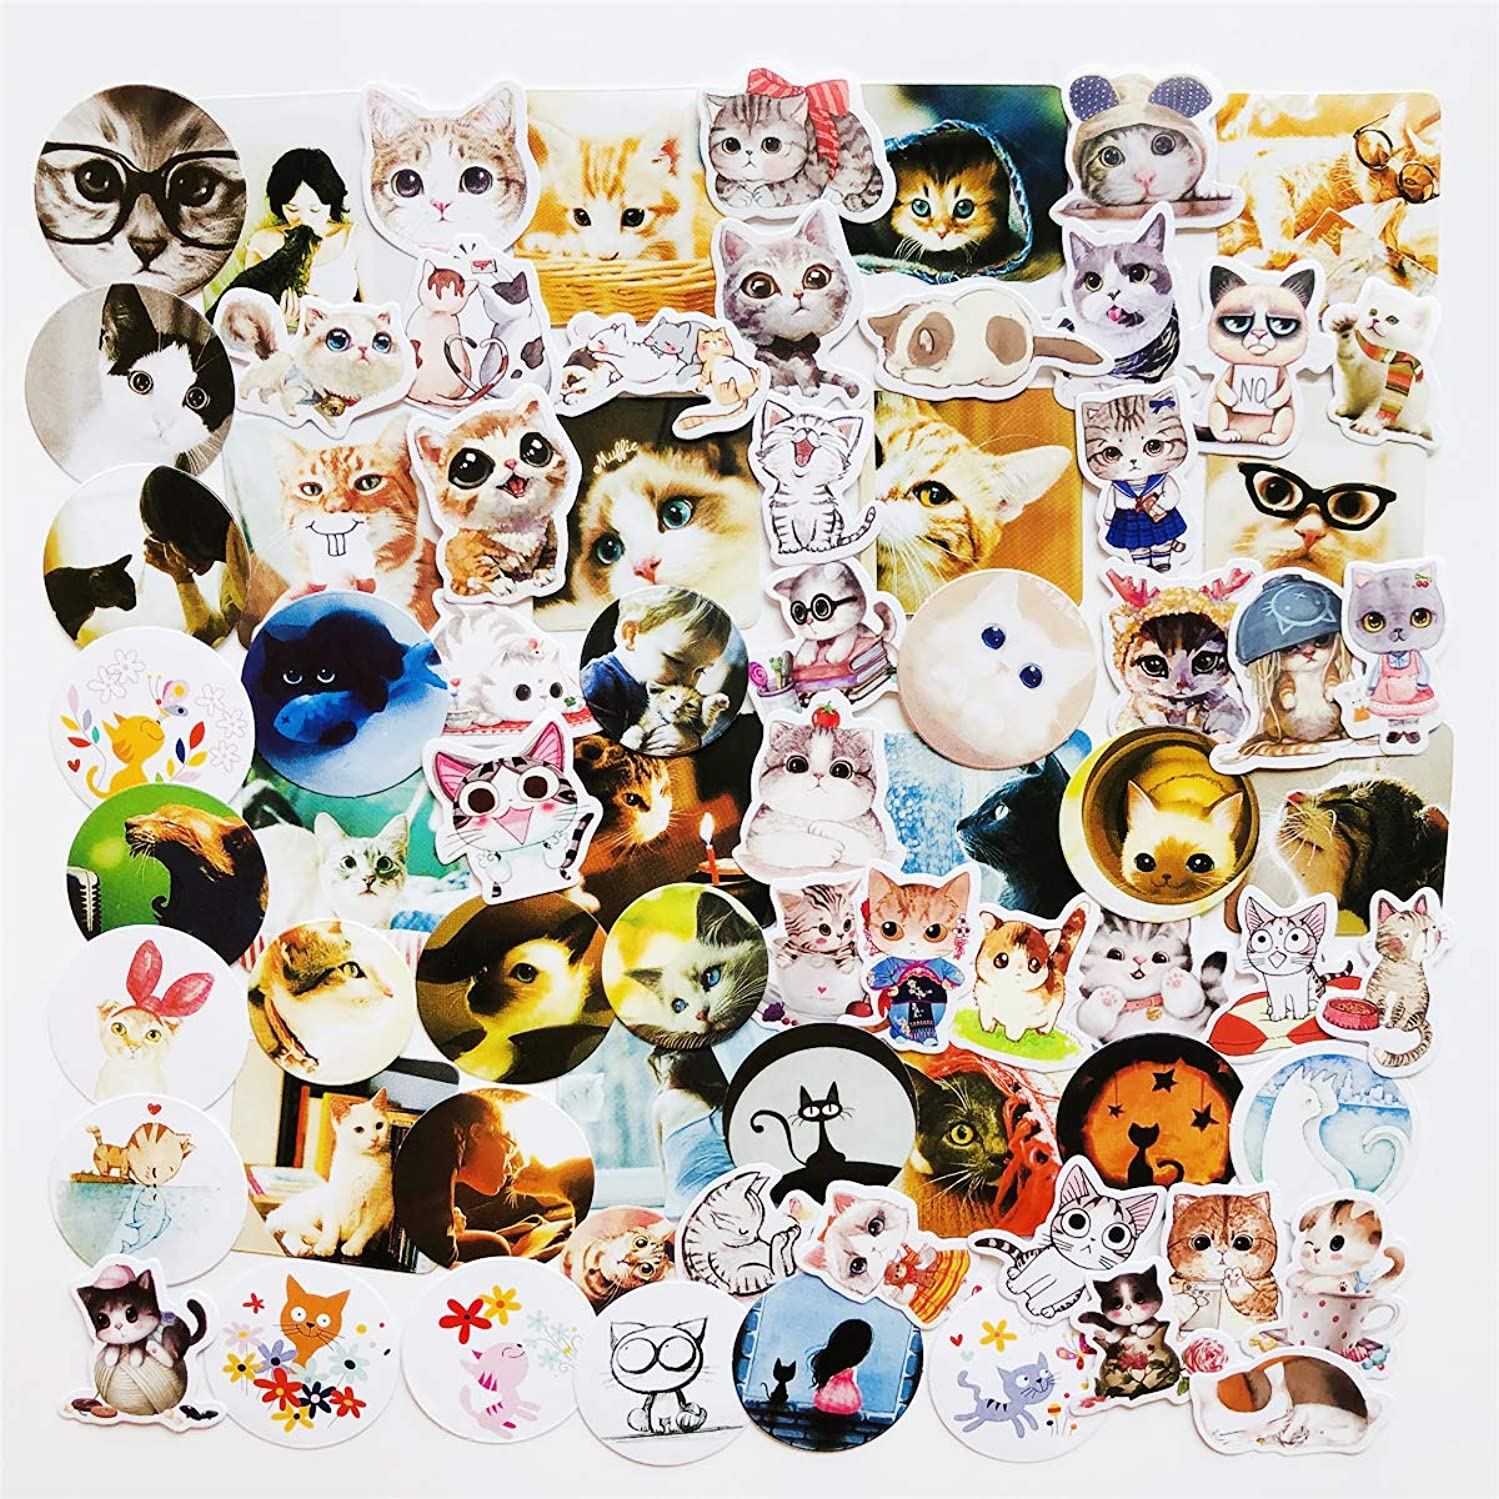 70 pcs Cut Cat Stickers Notebok Photo Album Water Cups Kindle Snowboard Laptop Luggage Car Motorcycle Bicycle Fridge DIY Home Decor